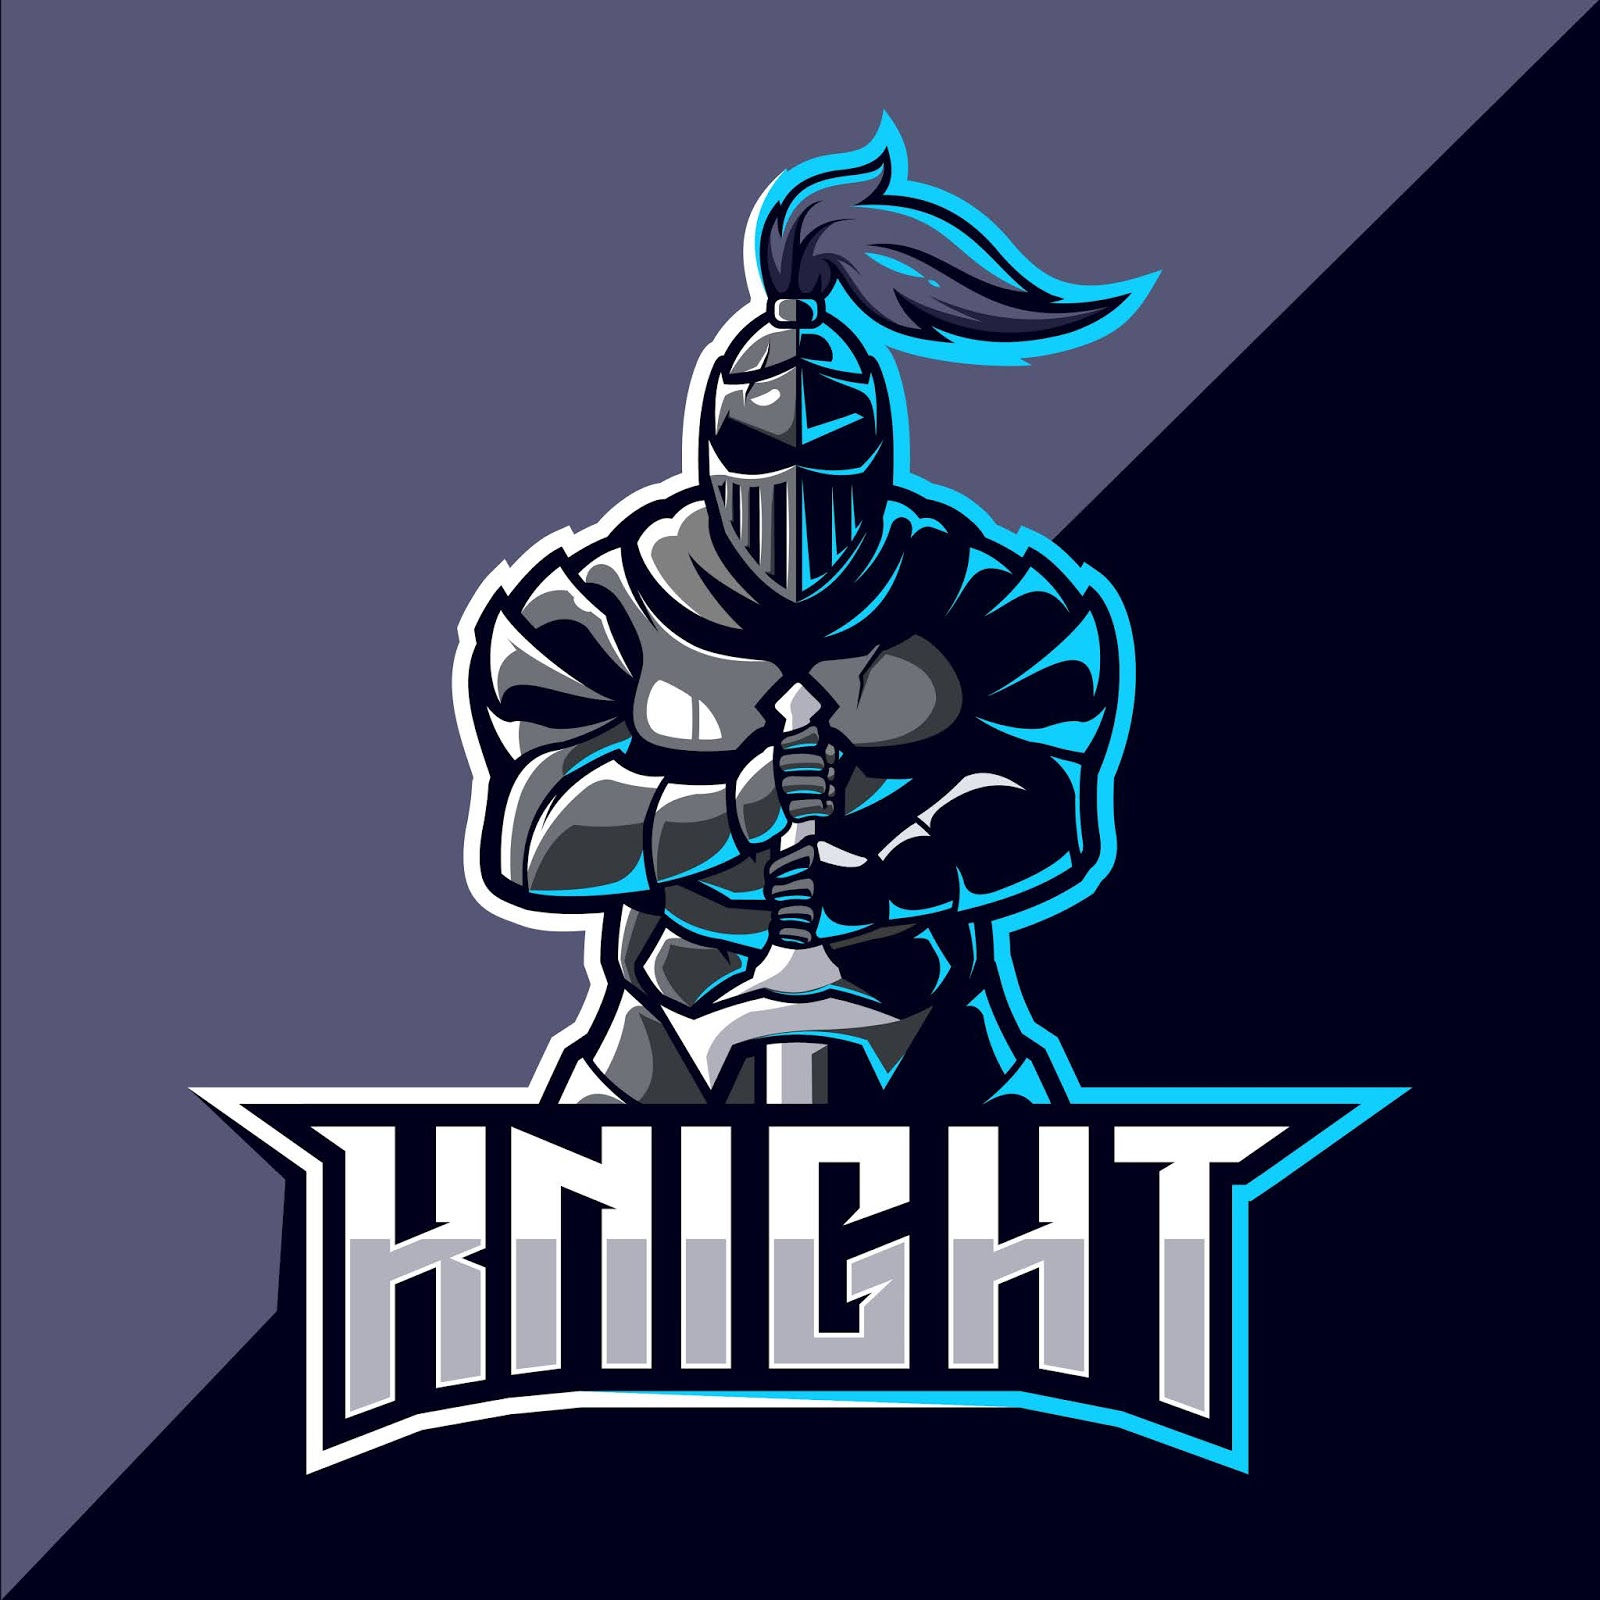 Knight Mascot Esport Logo Design Free Download Vector CDR, AI, EPS and PNG Formats